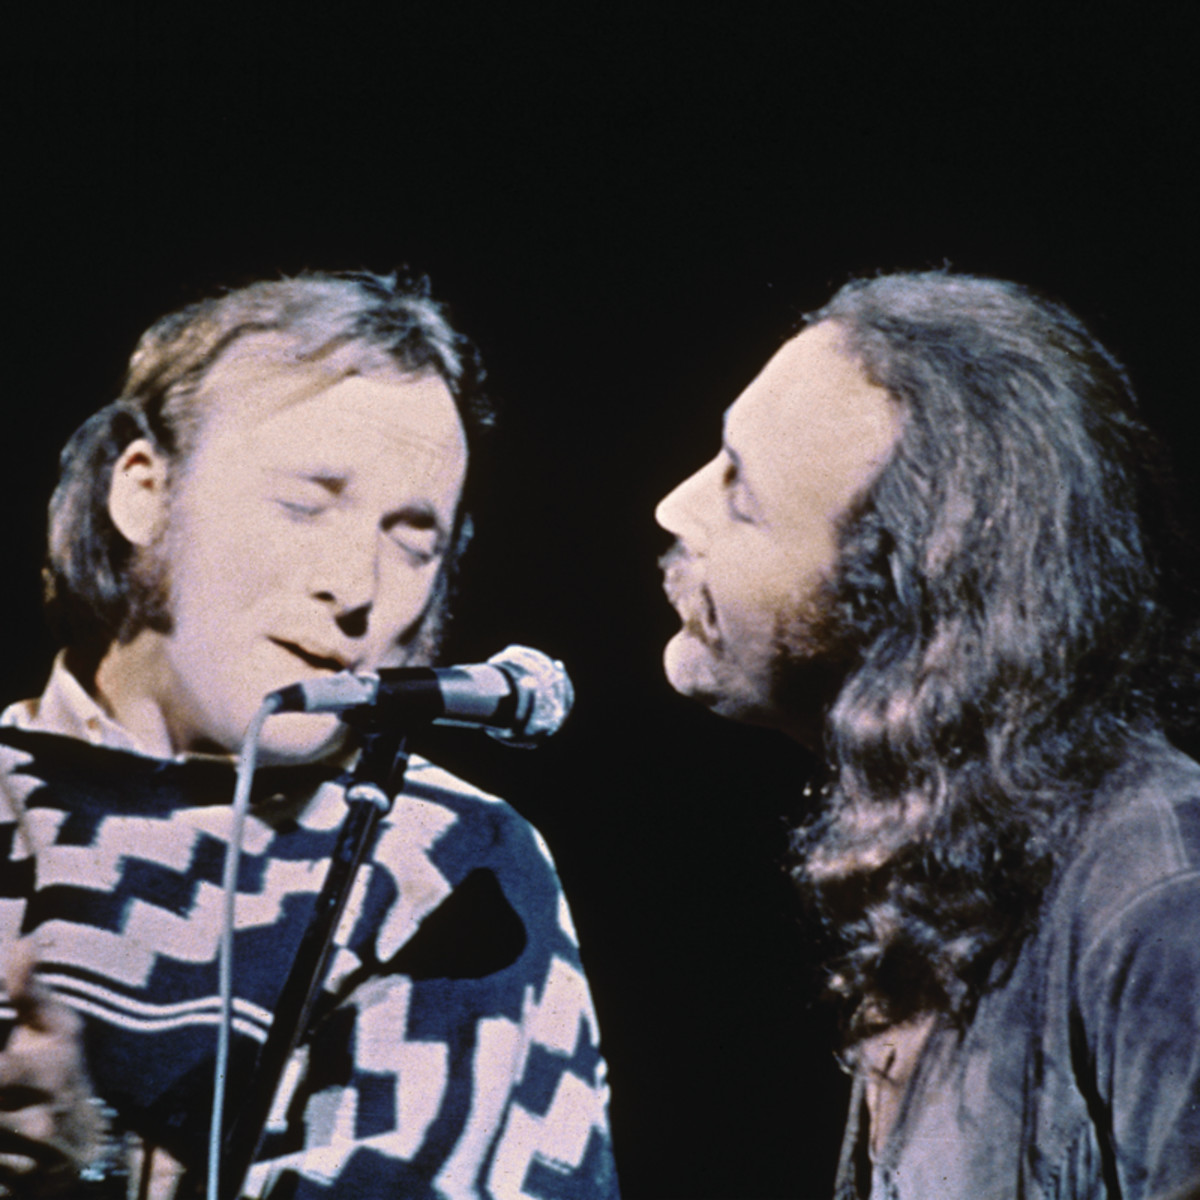 Stephen Stills (left) and David Crosby of the group Crosby, Stills, & Nash performs on stage at the Woodstock Music and Art Festival, Bethel, New York, August 17, 1969. (Photo by Fotos International/Getty Images)